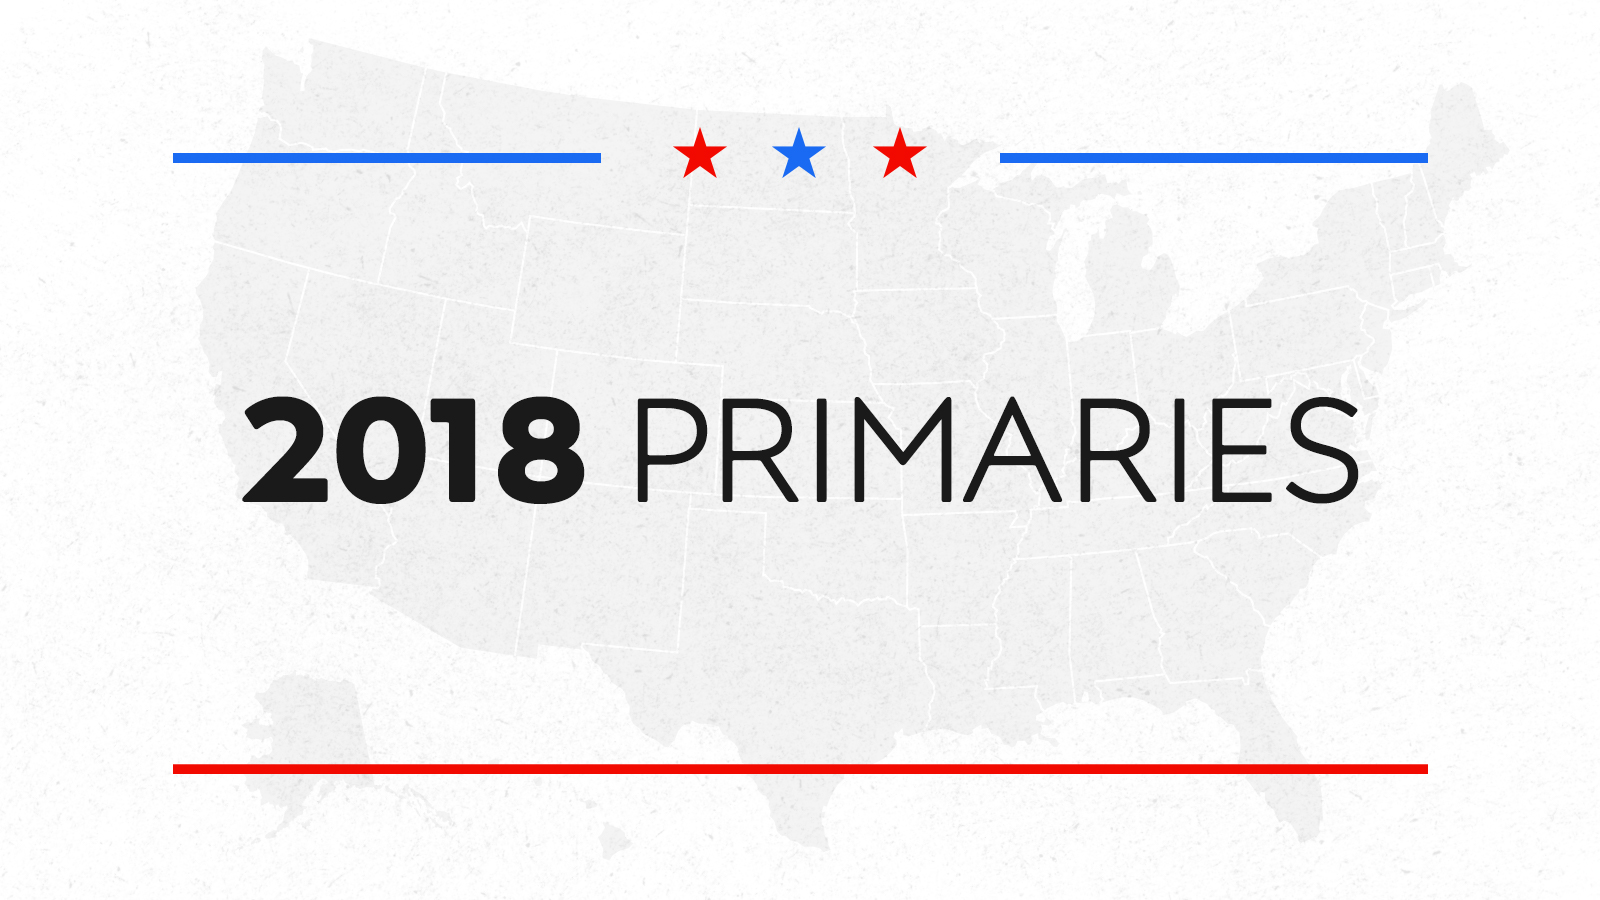 Texas state primary election results